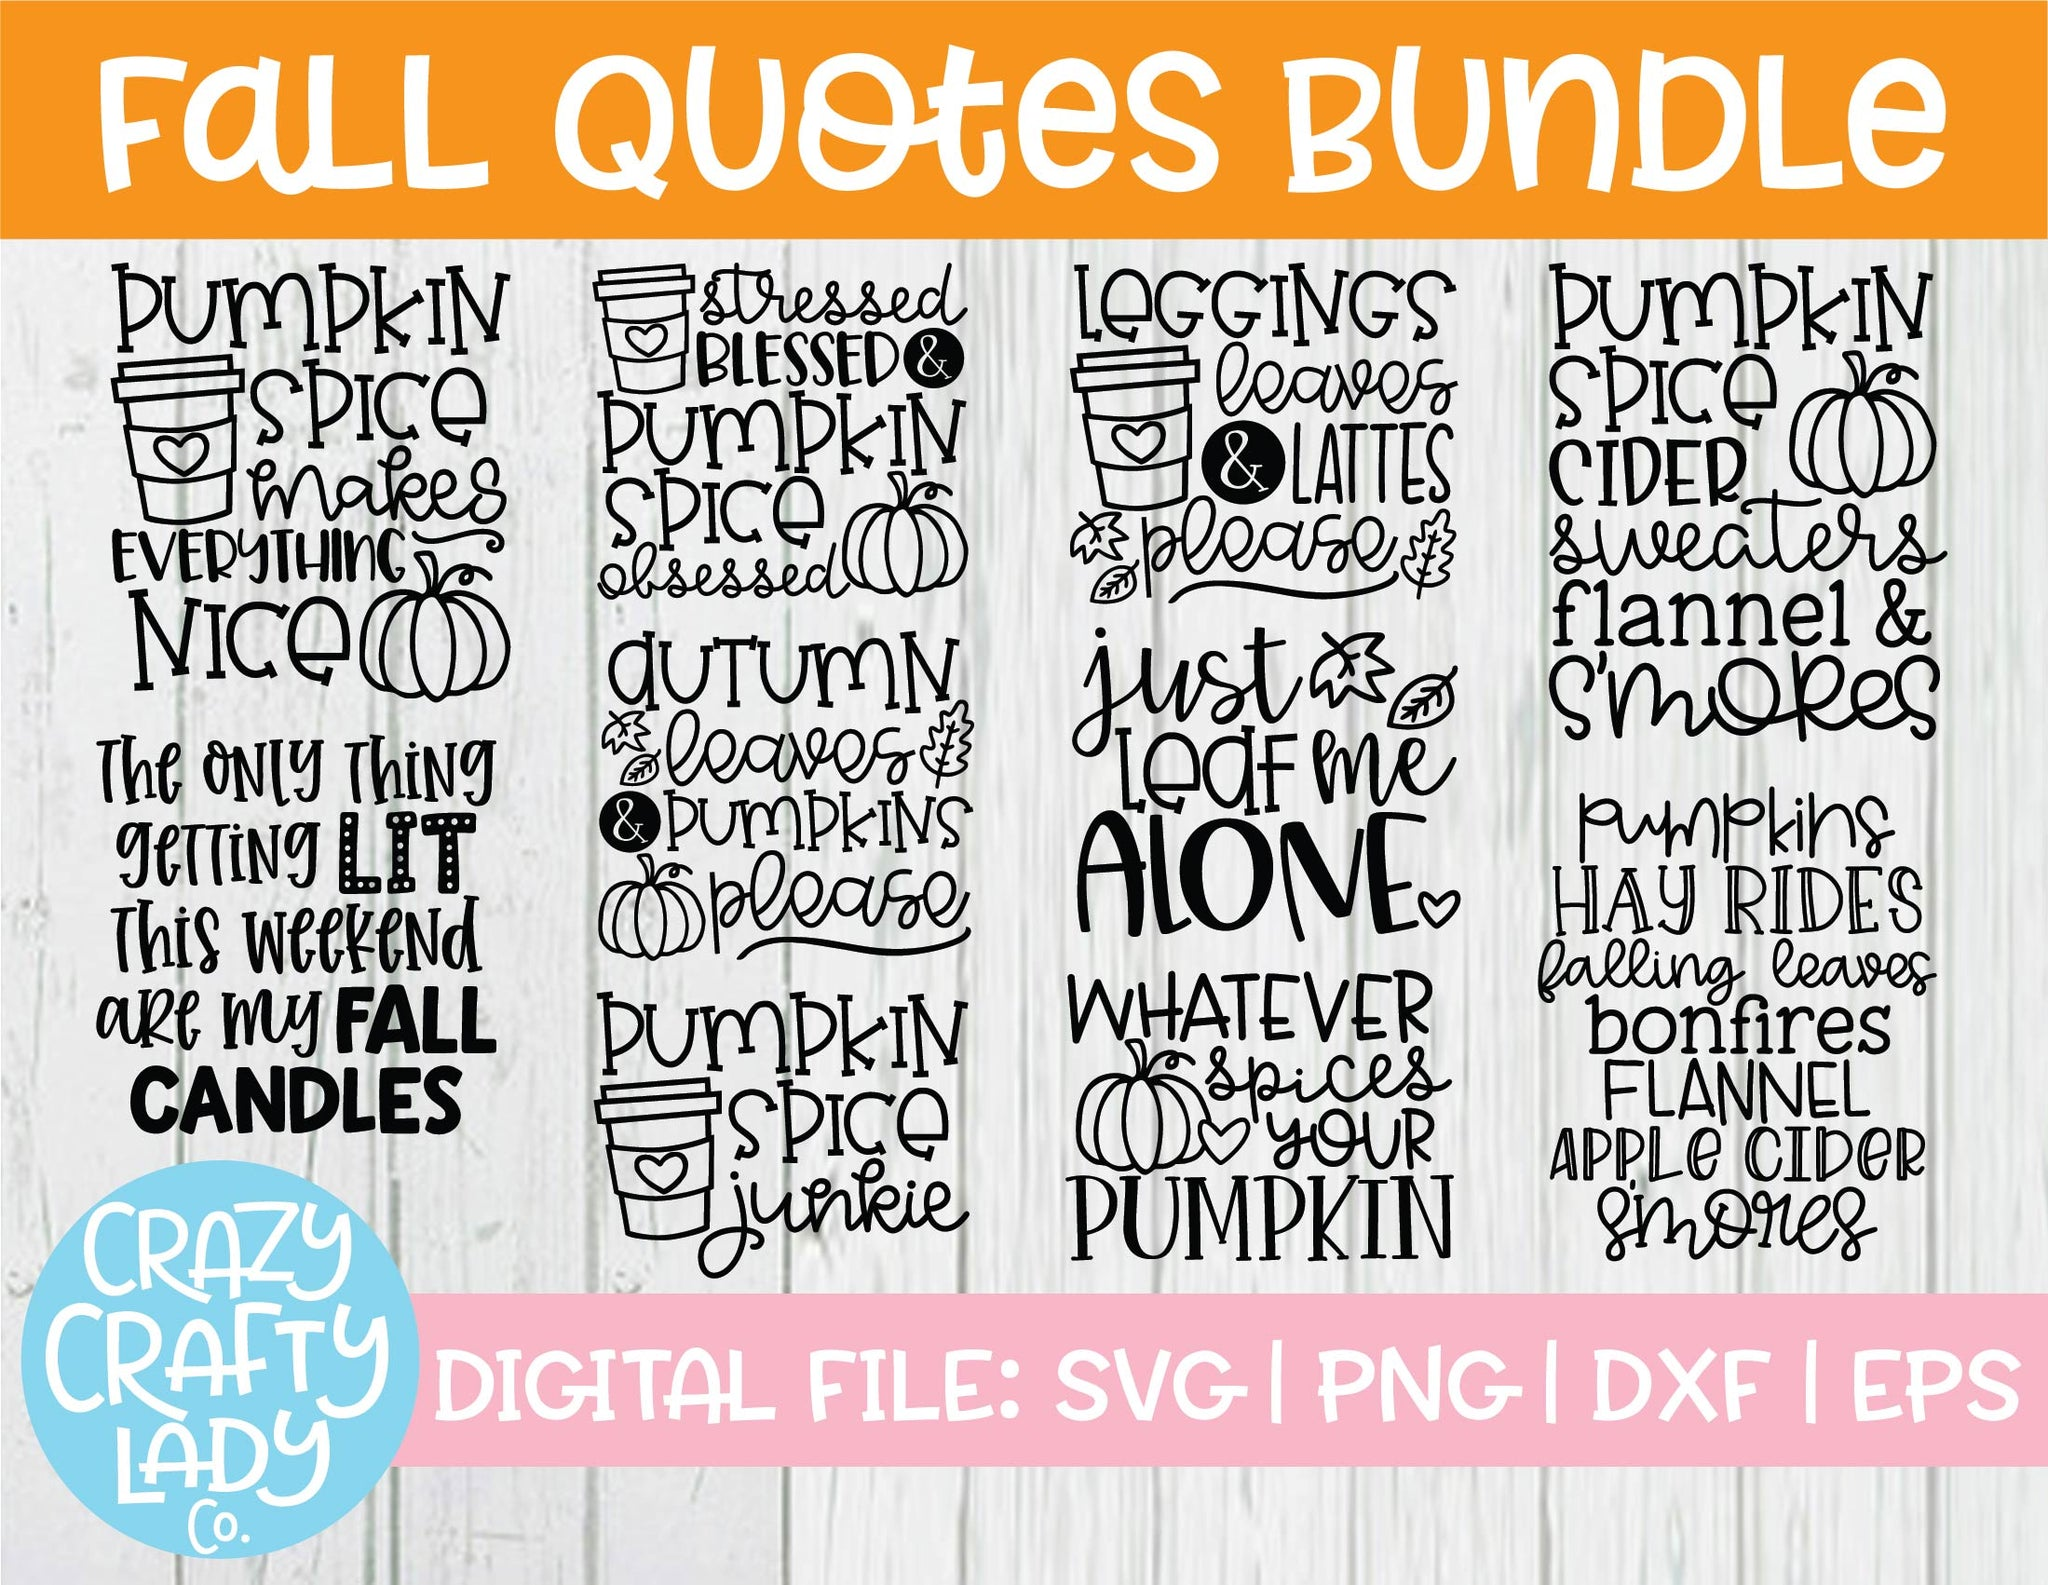 Fall Quotes Svg Cut File Bundle Crazy Crafty Lady Co